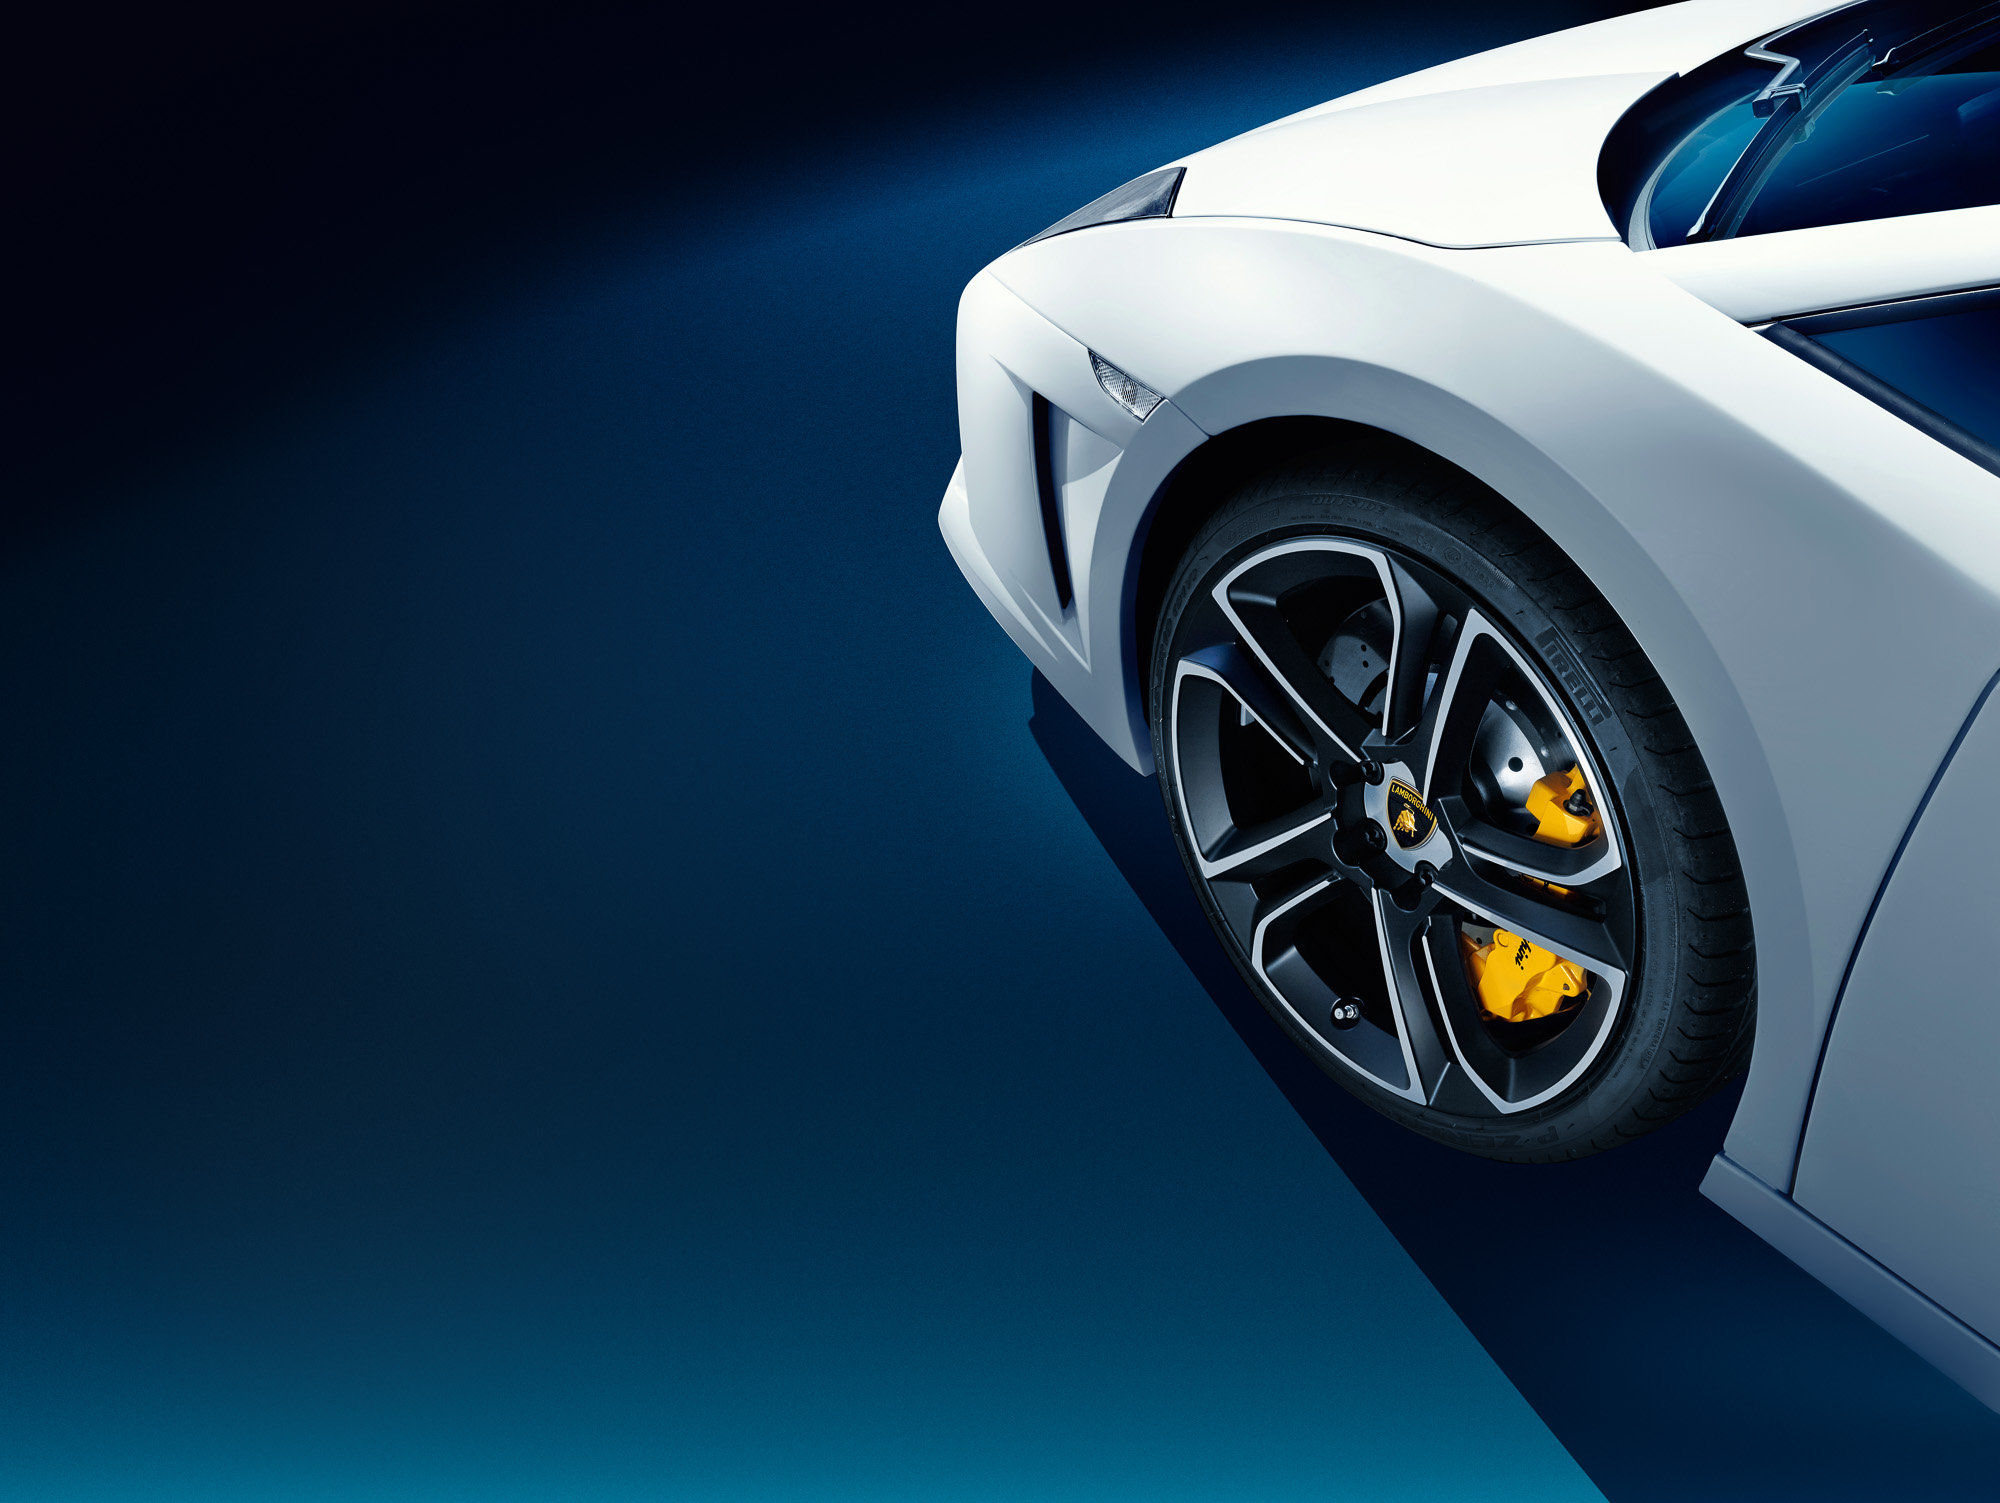 migs-foto-cgi-hong-kong-car-automotive-photography-photographer-lamborghini-gallardo-lp560-4-white-photoshoot-carshoot-front-wheel-detail-2K